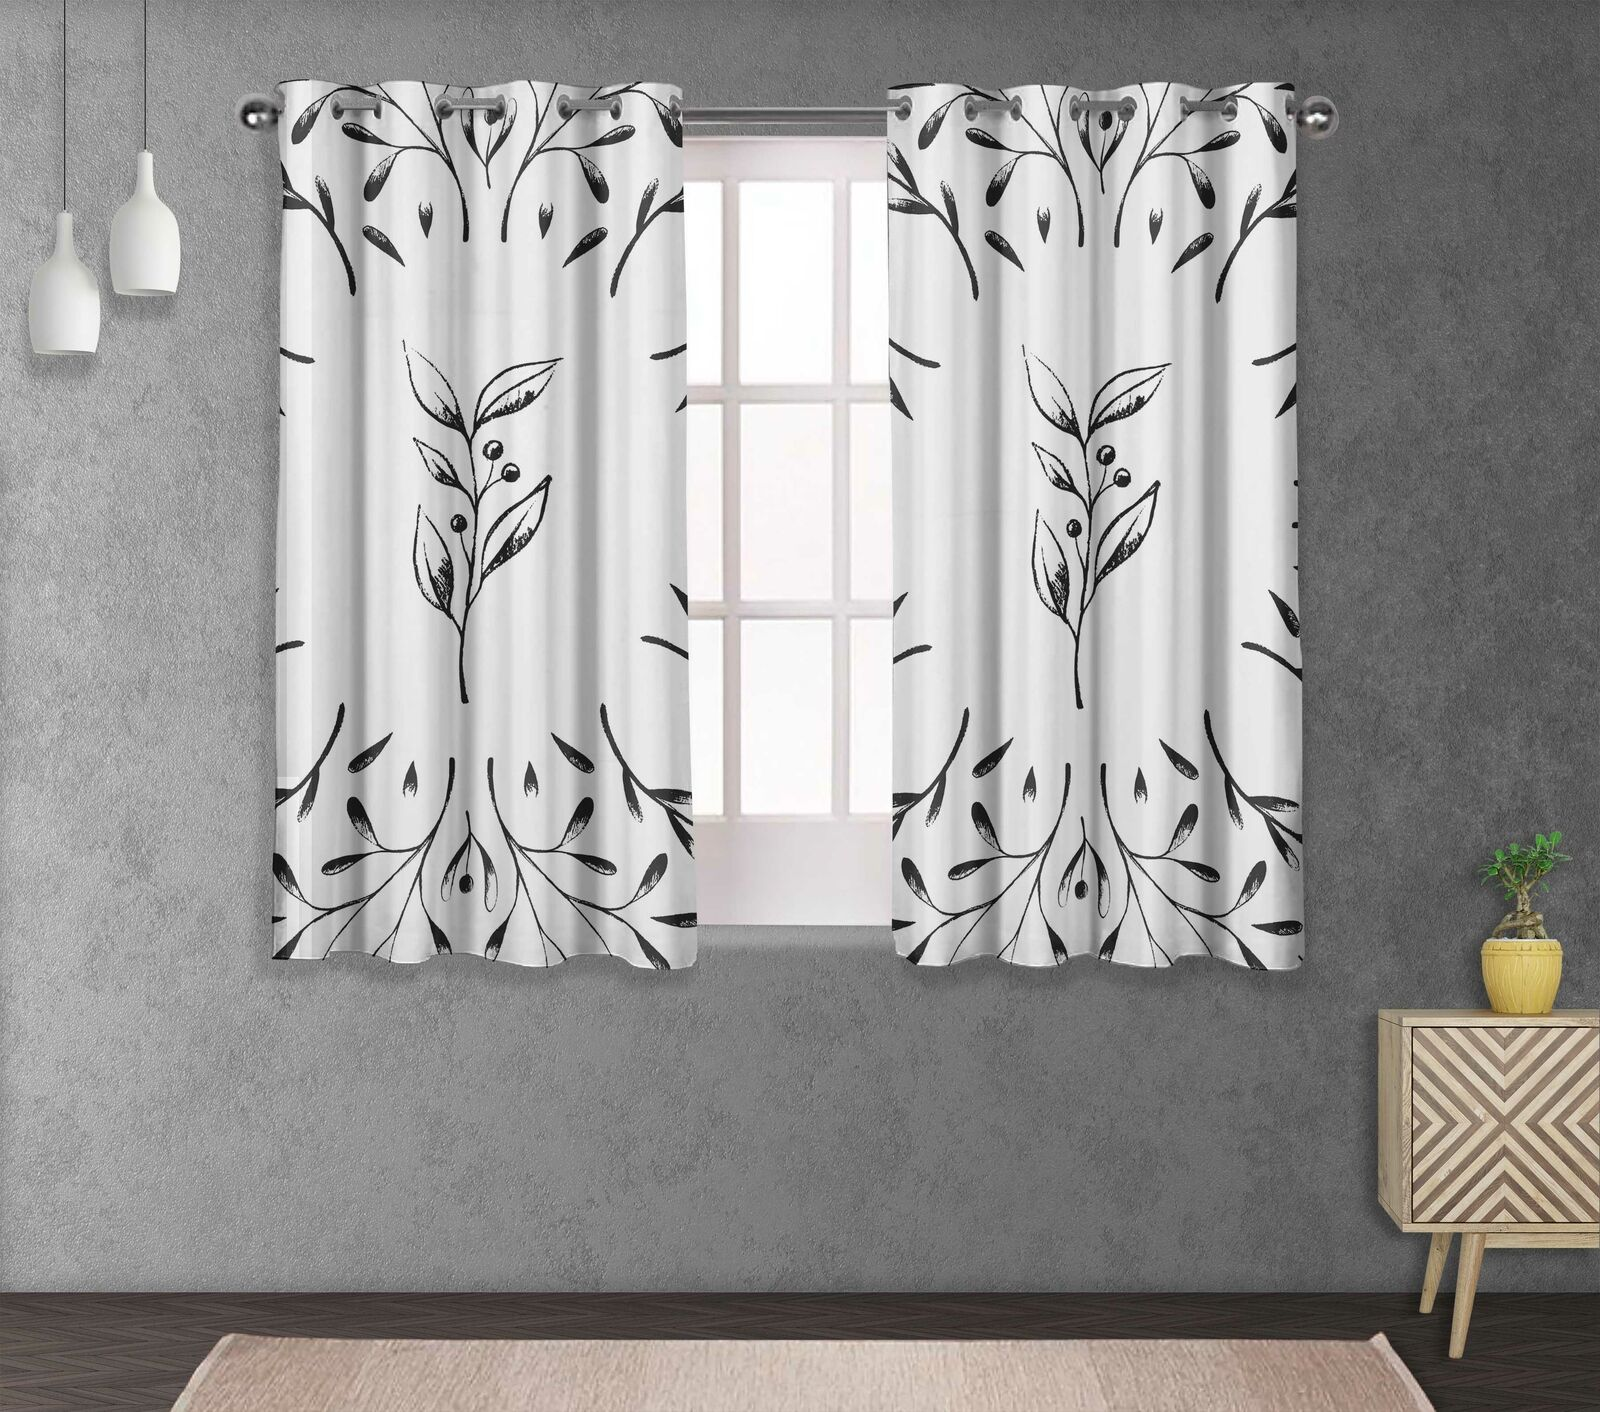 S4sassy European Ash Seeds Home Decor short & long Curtain Eyelet Panel-LF-516N